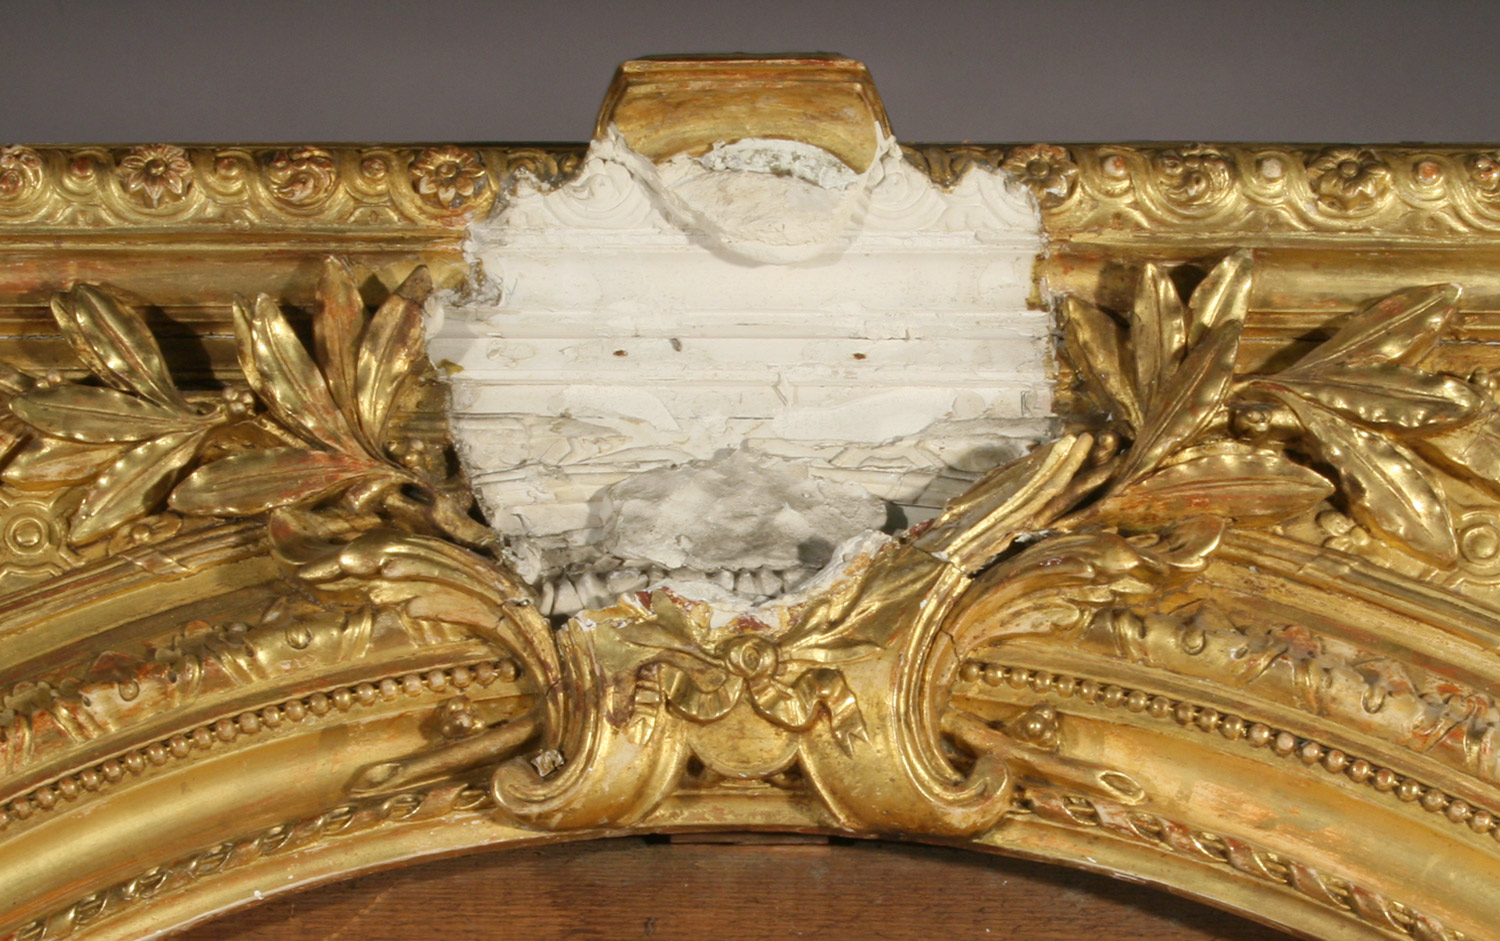 Giltwood mirror detail before conservation